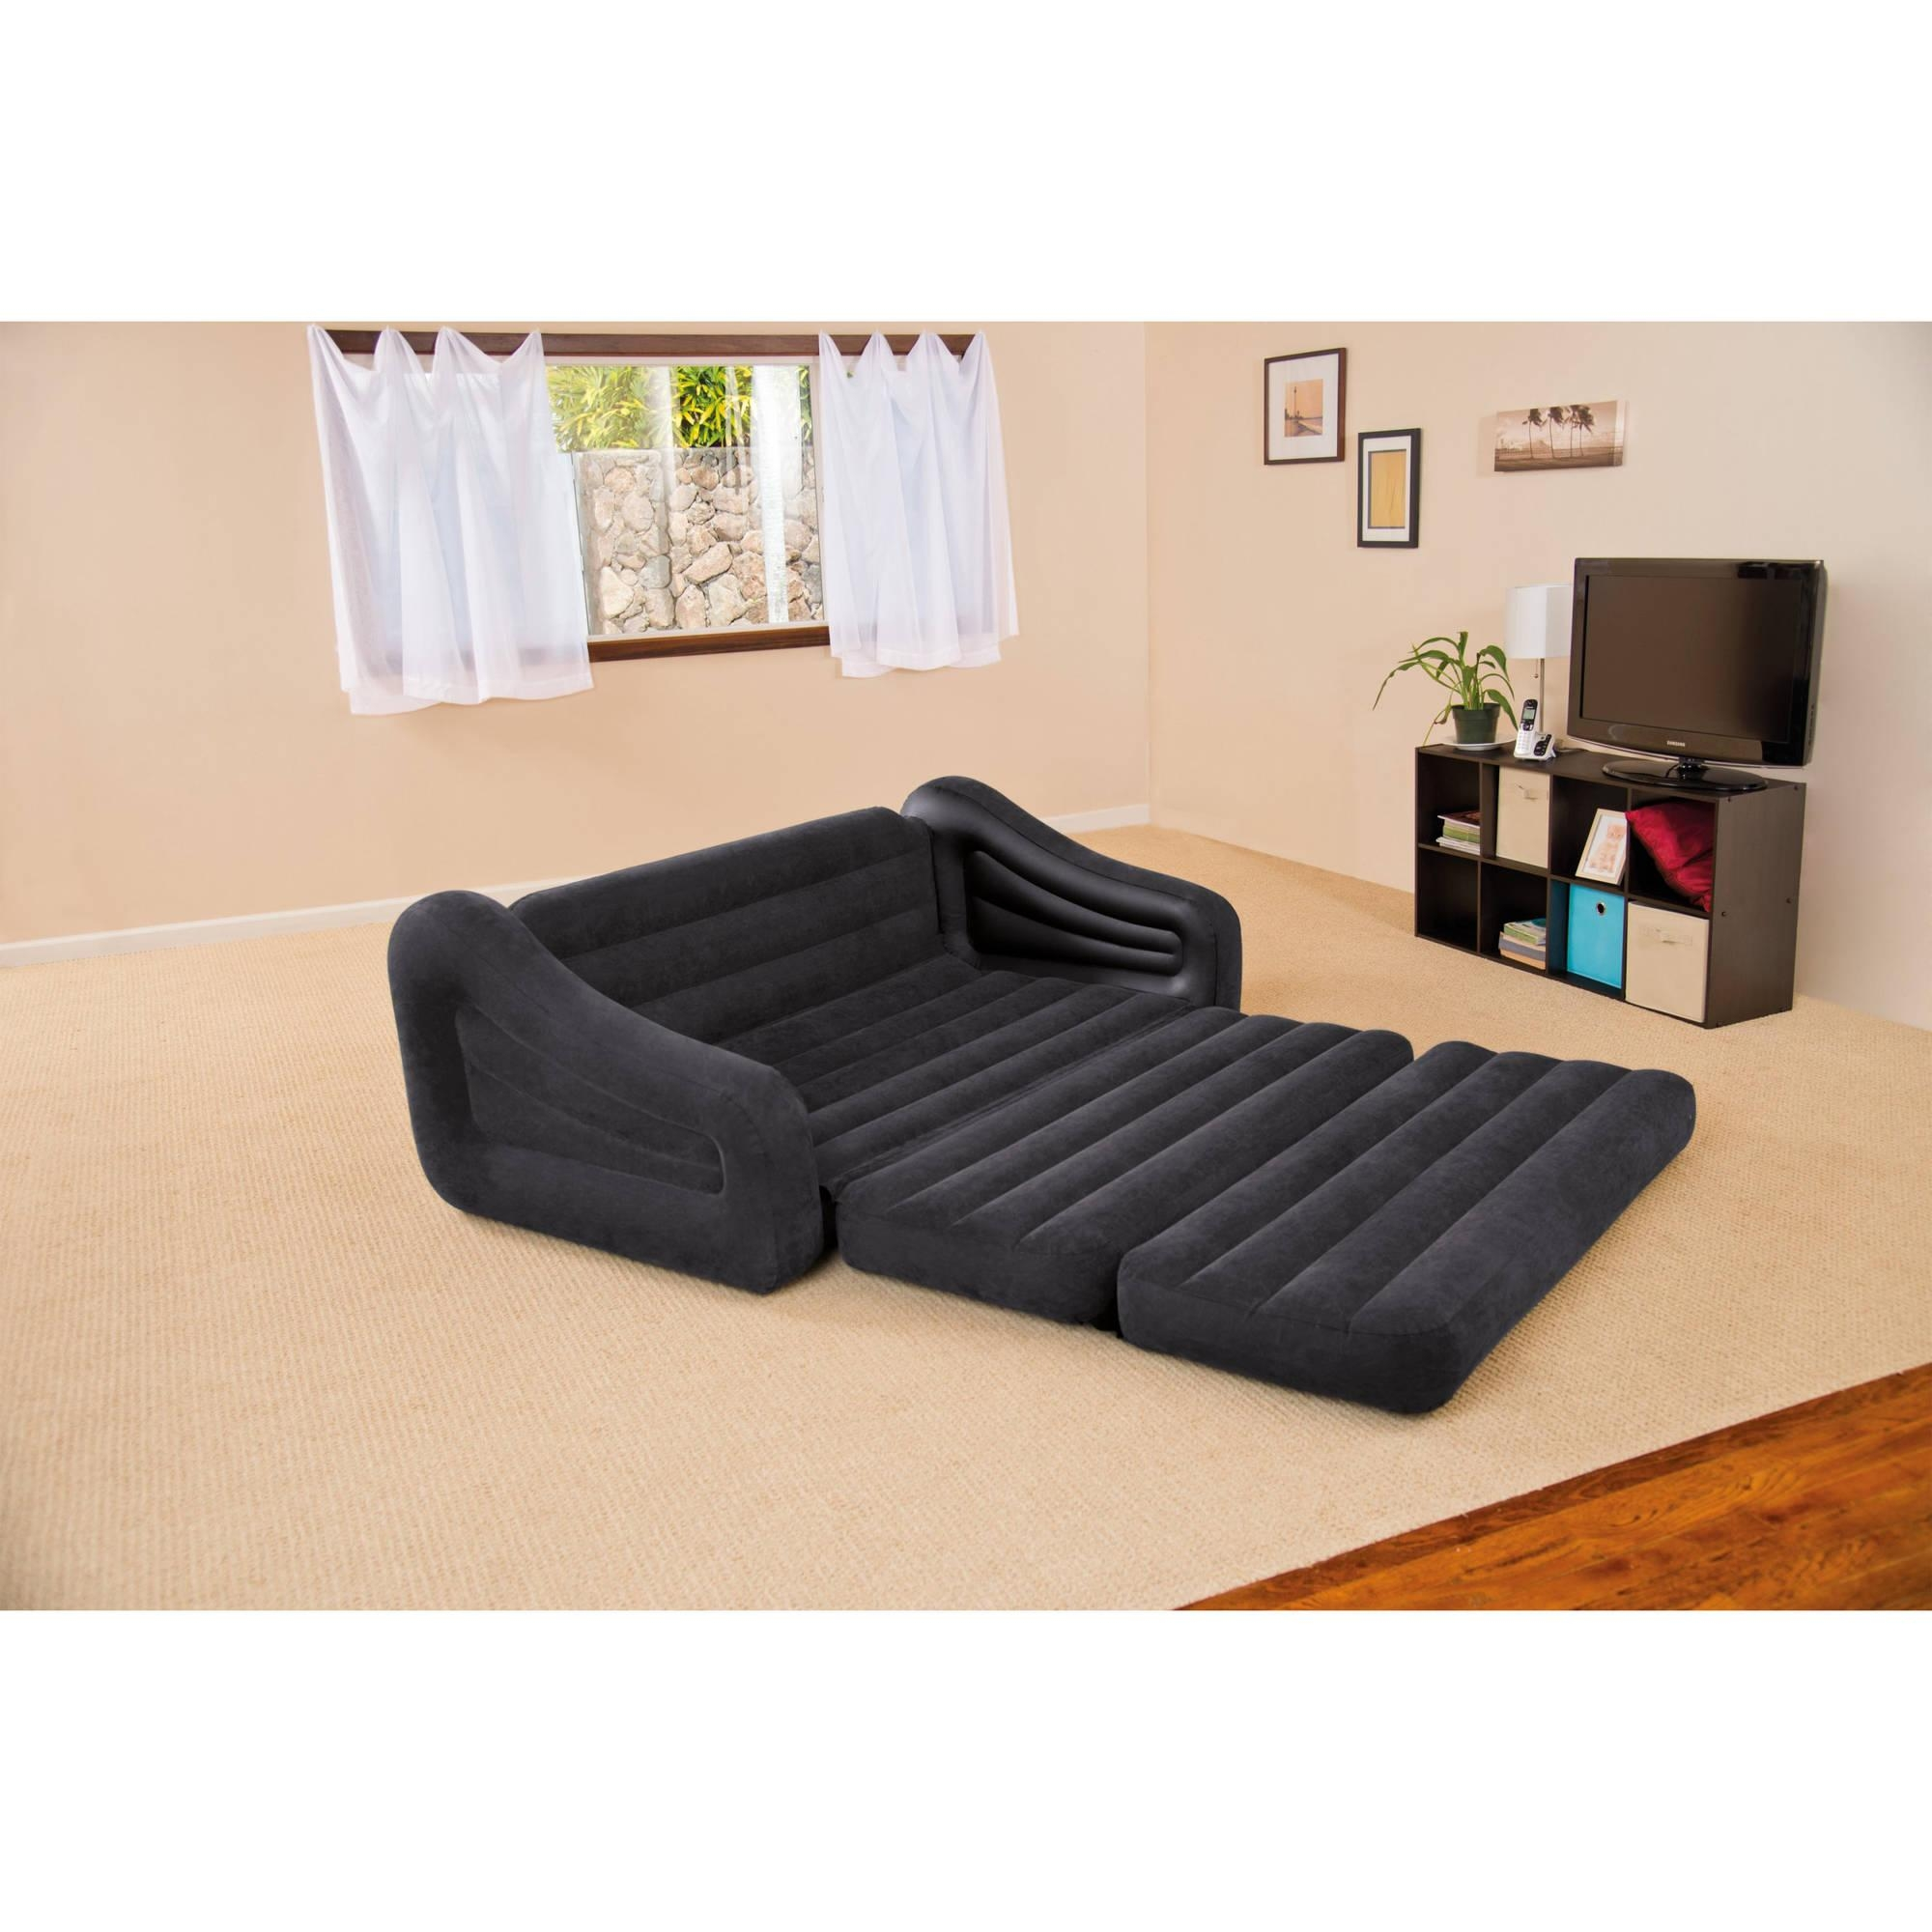 Inflatable Sleeper Sofa Bed: 20 Best Ideas Intex Inflatable Pull Out Sofas